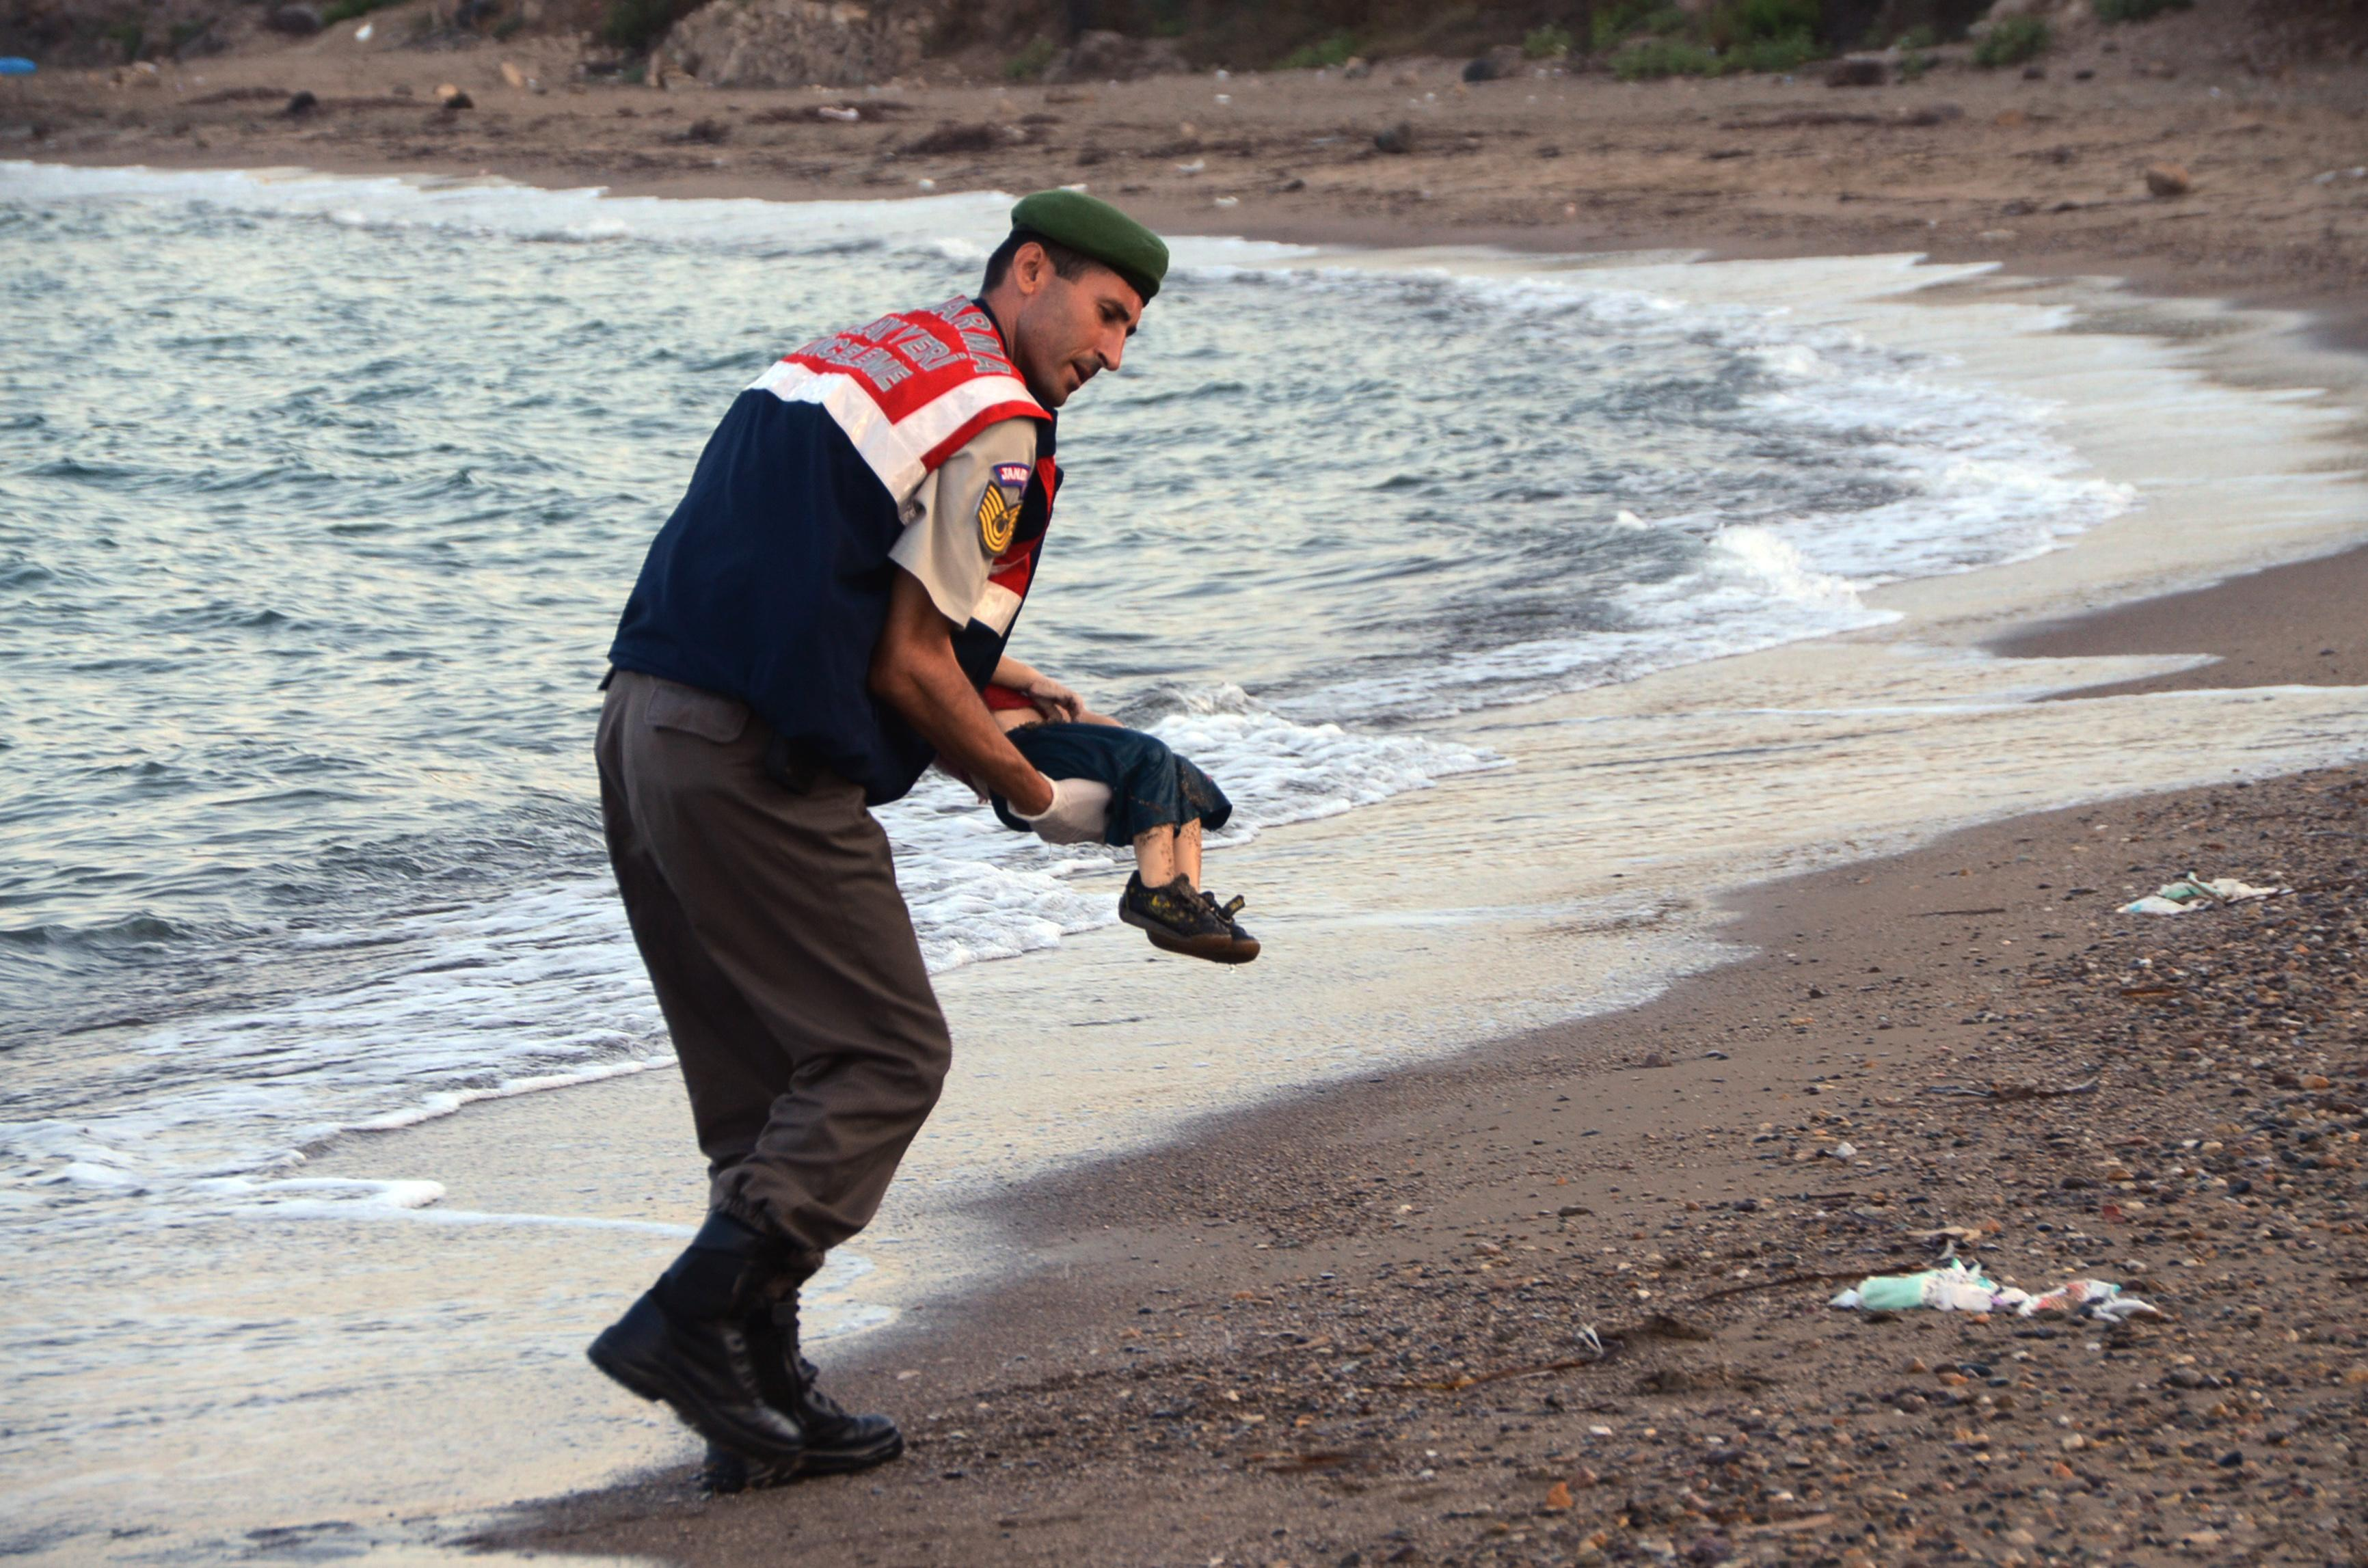 Heartbreaking photo of a drowned toddler embodies the world's failure in Syria